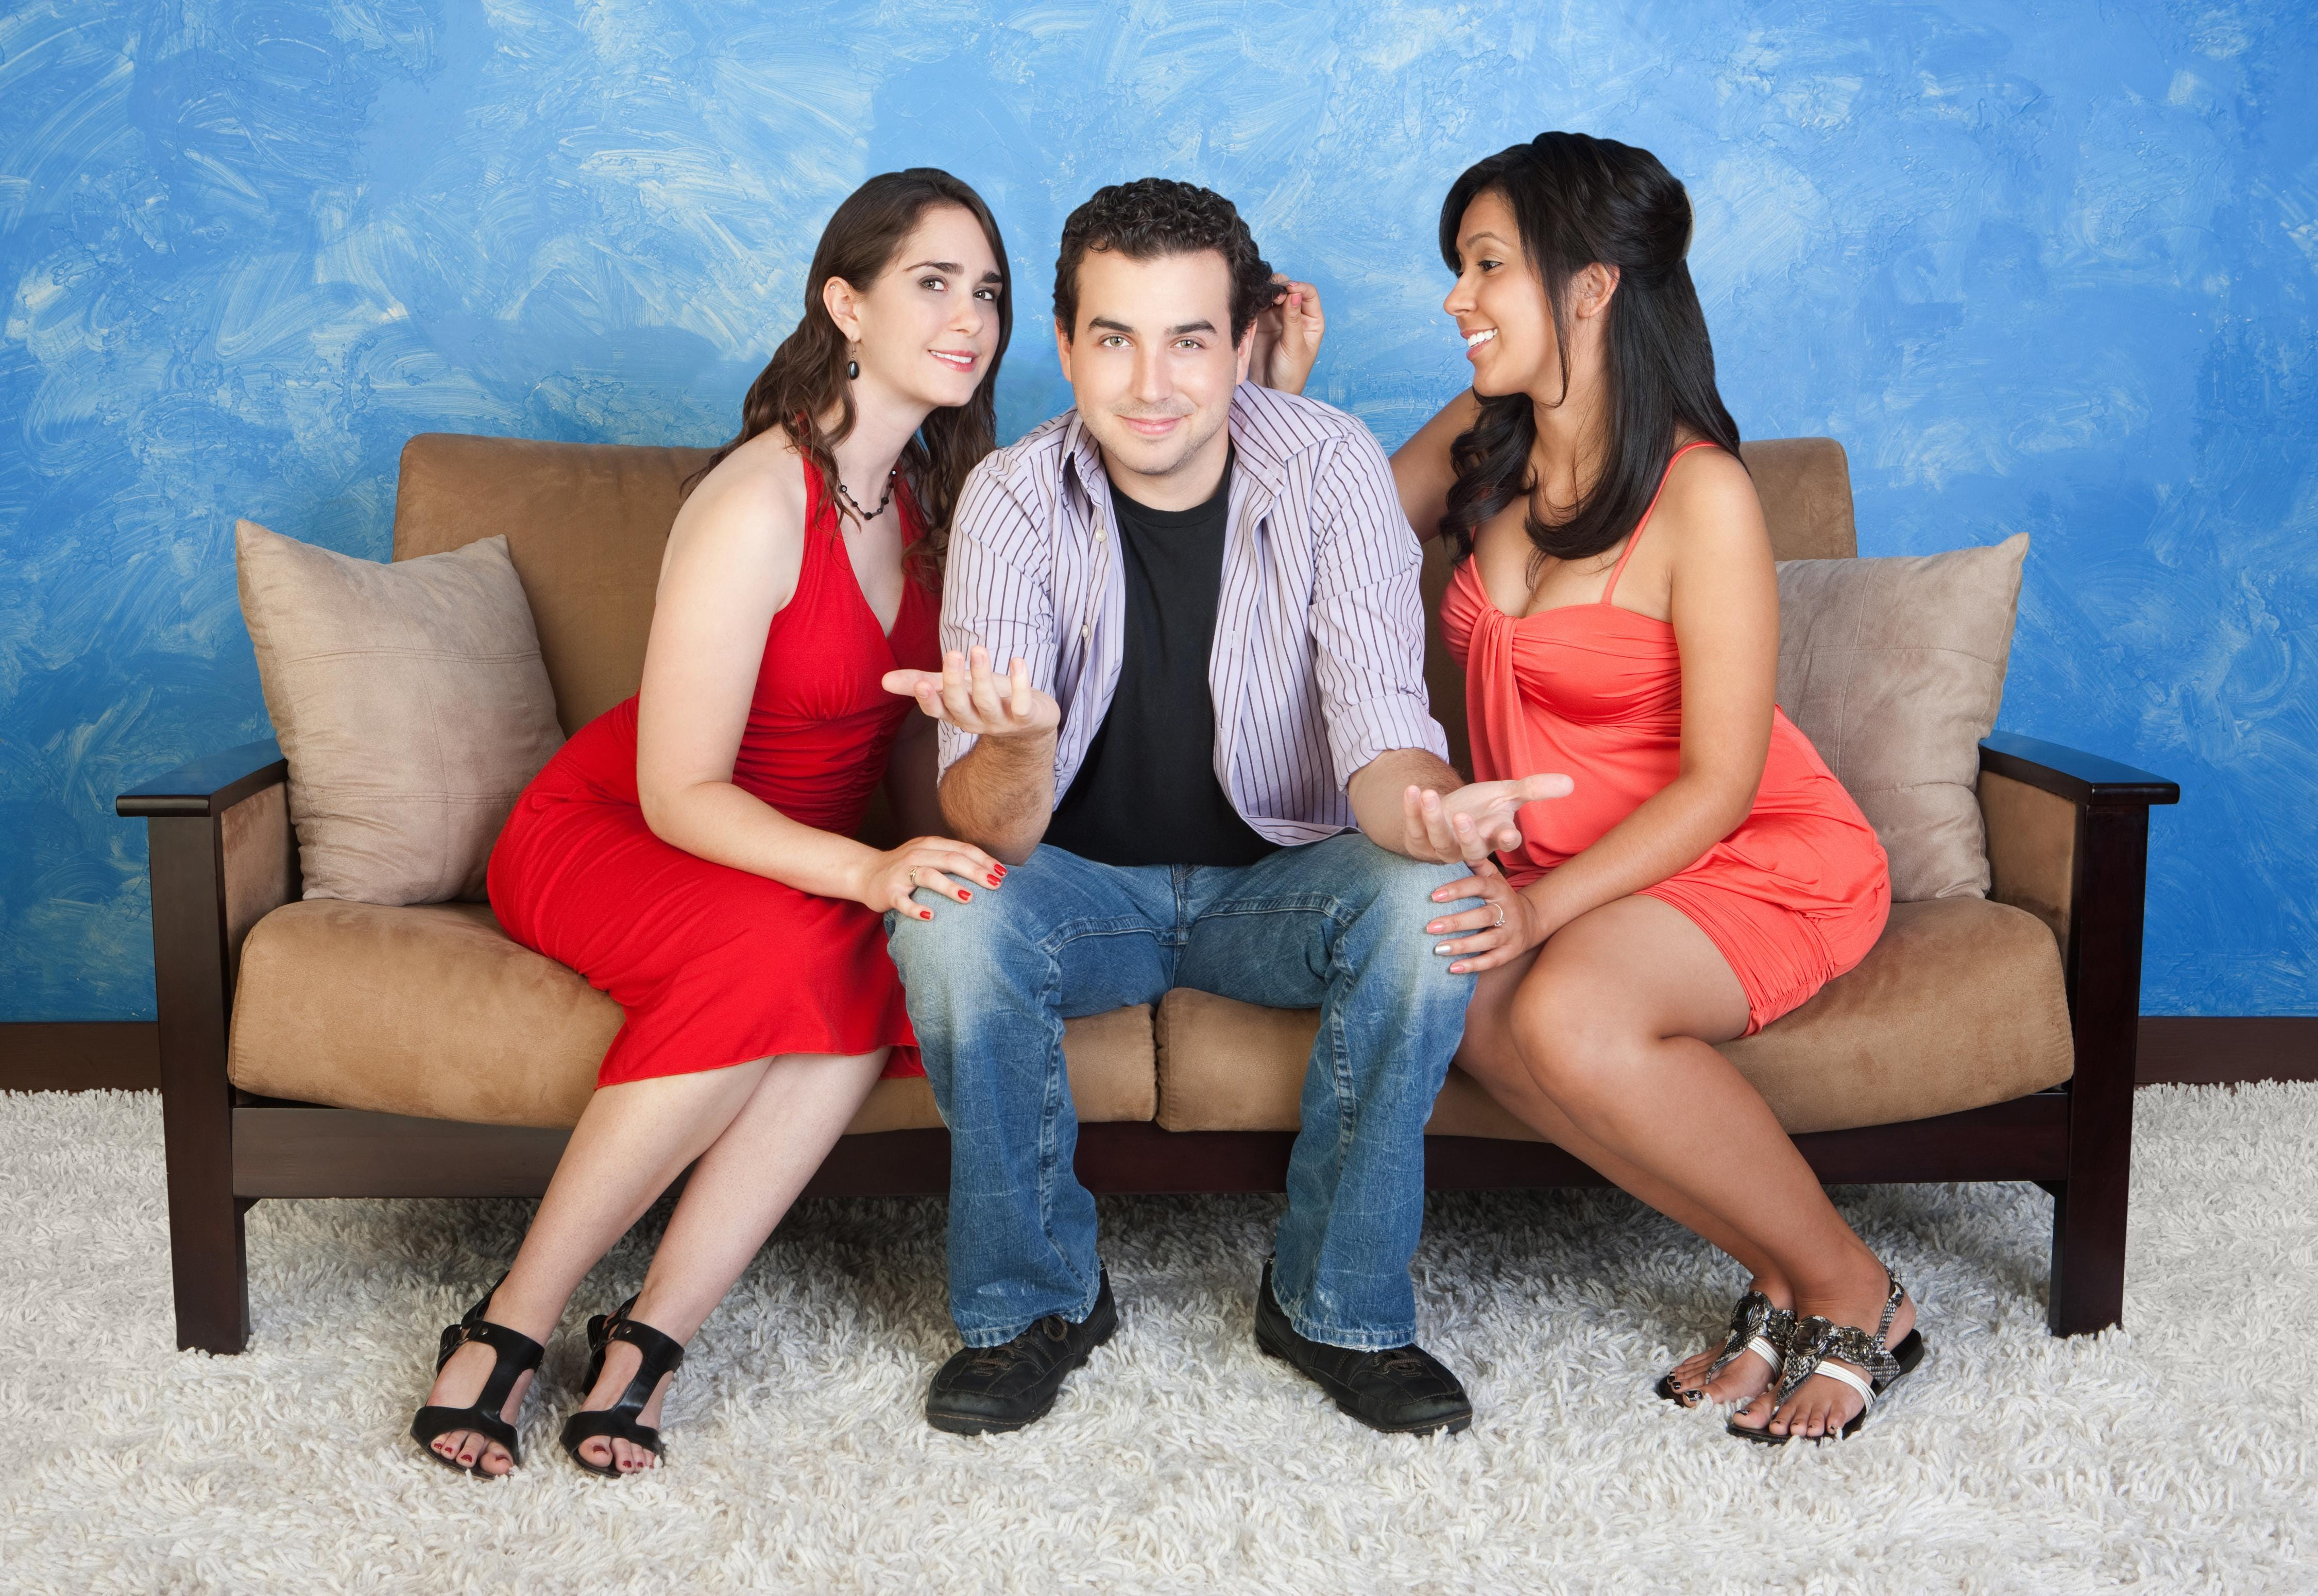 Online dating for polyamory